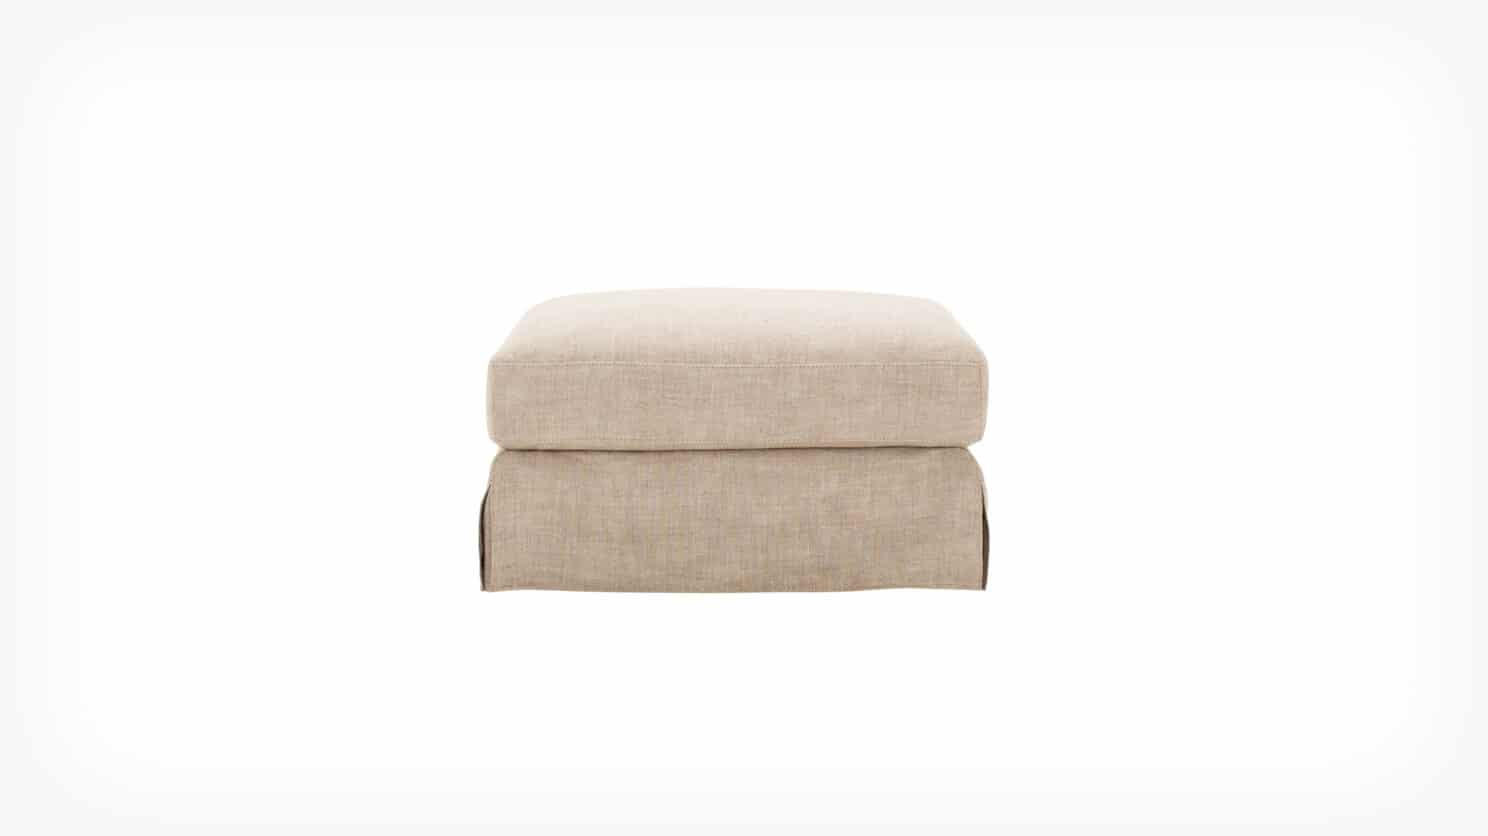 32113 04 01 ottoman slipcover blanche side view